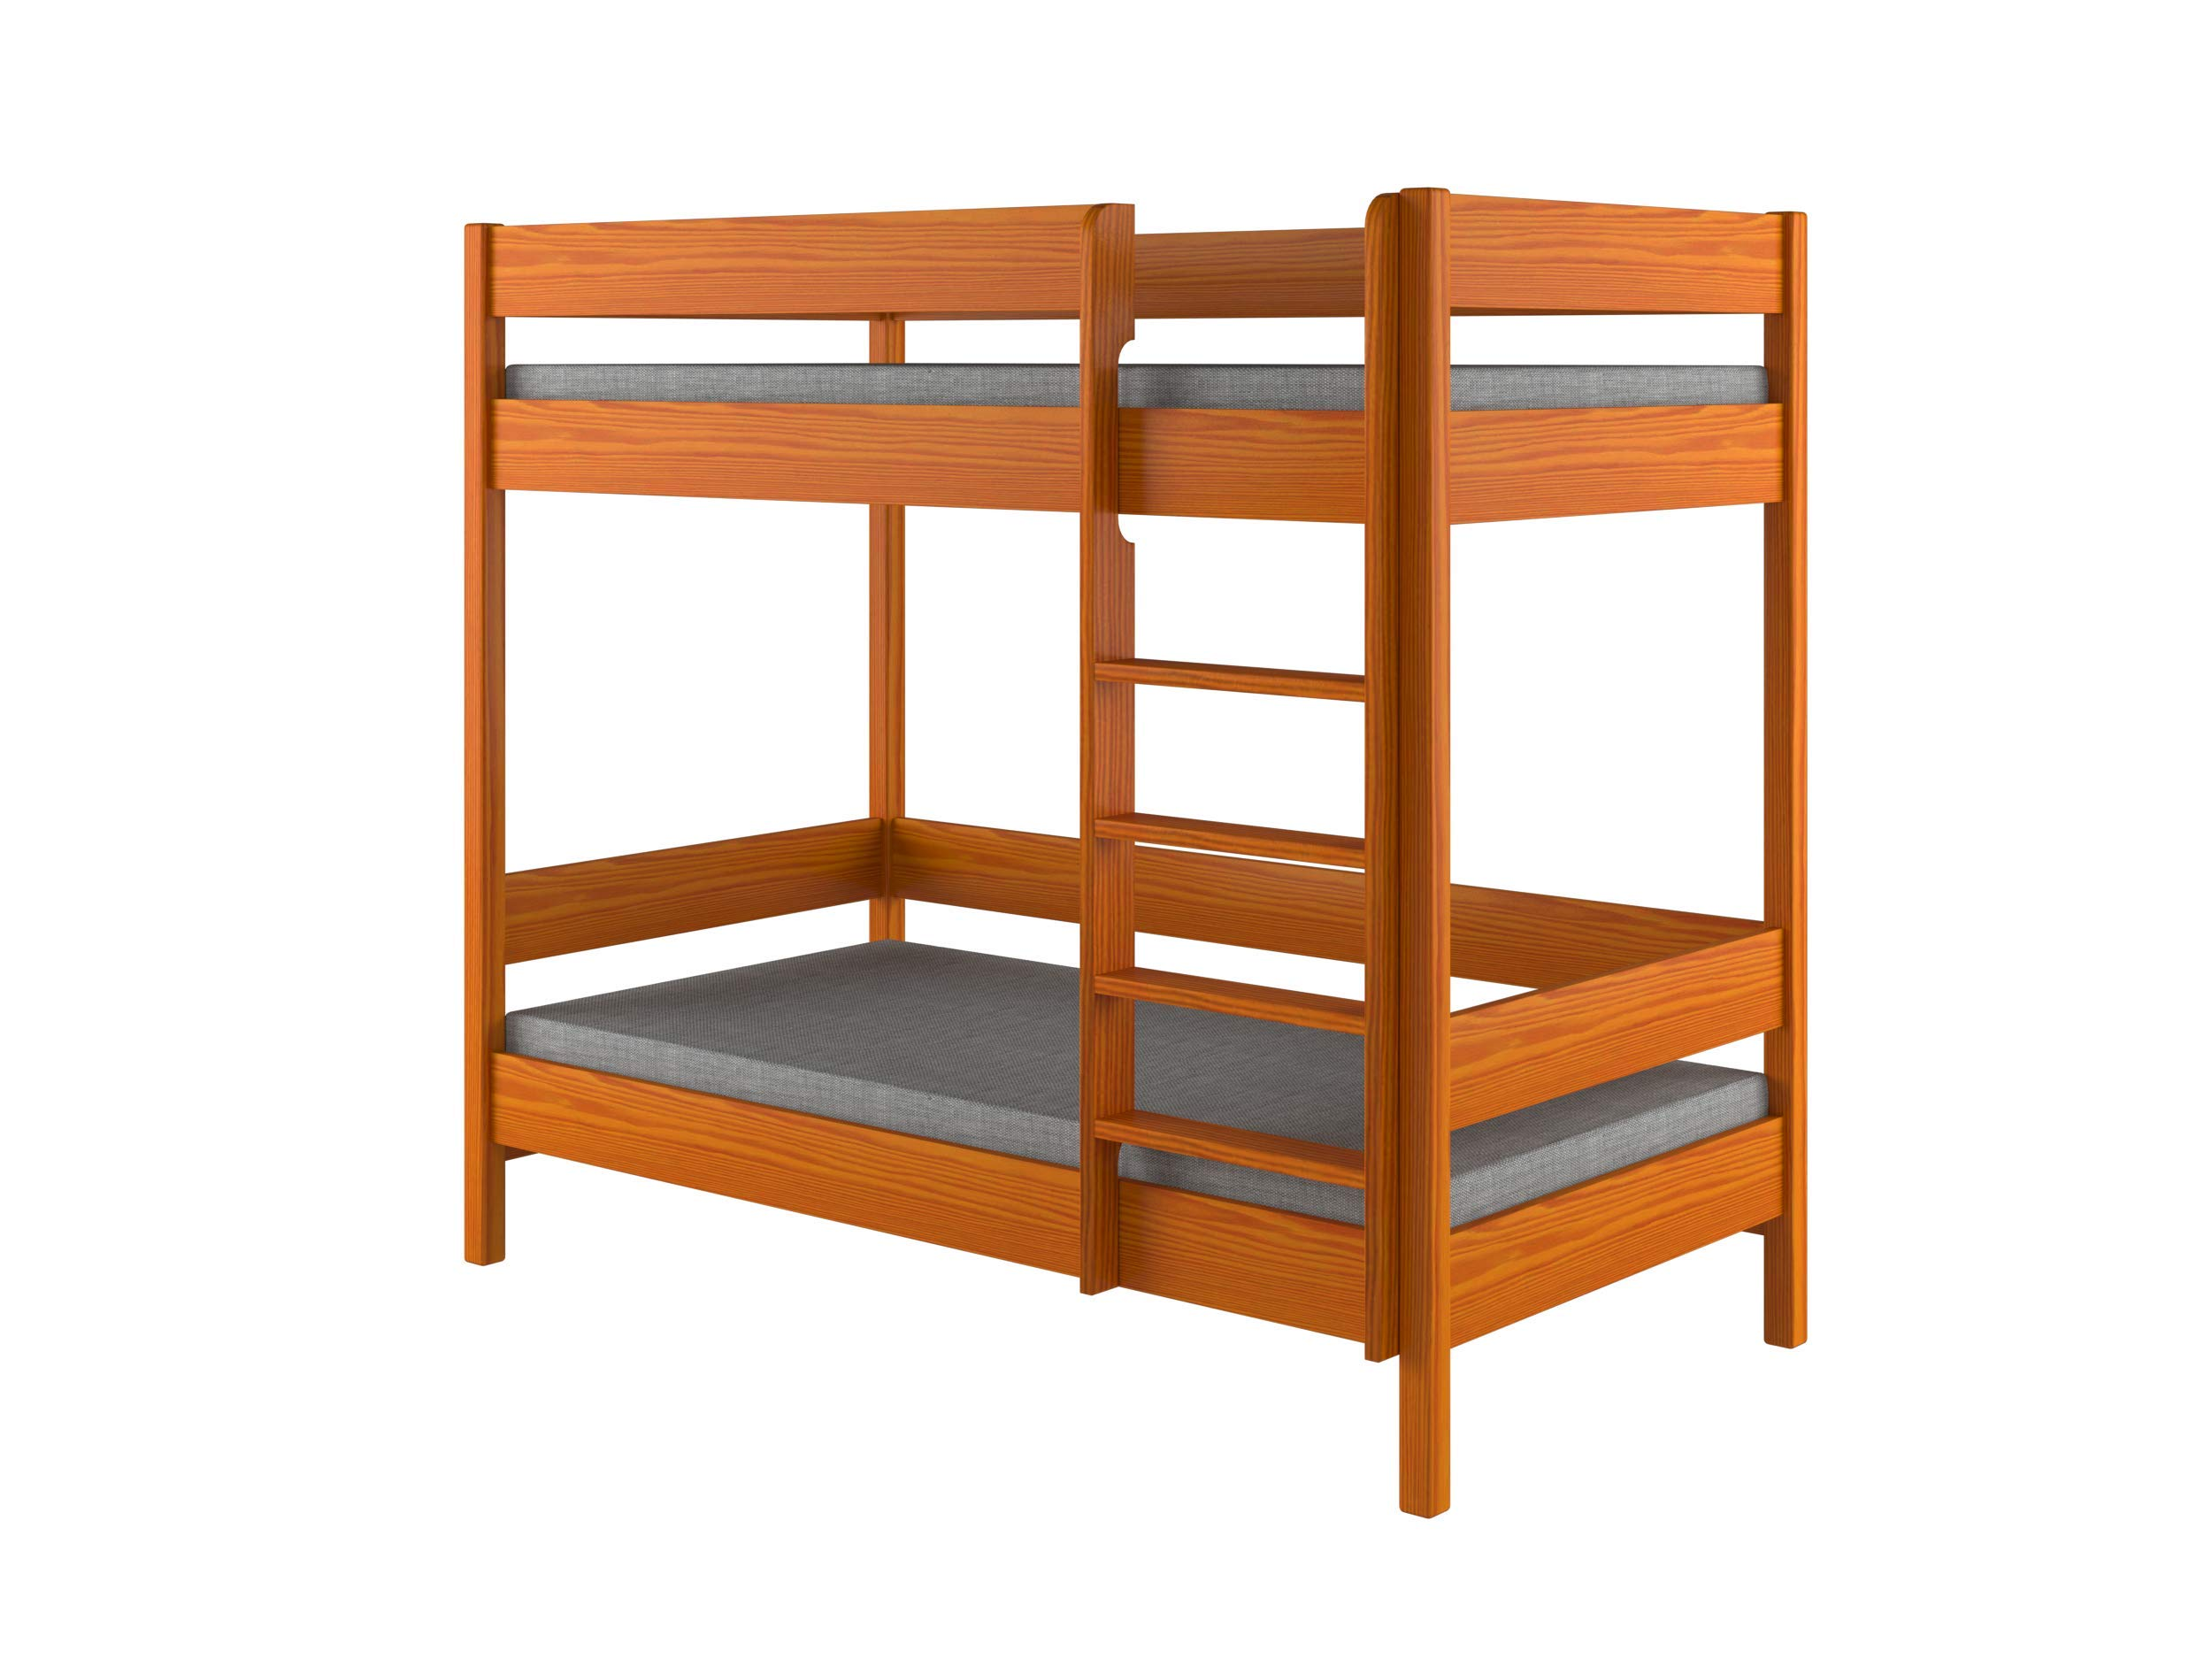 Children's Beds Home Bunk Beds - Kids Children Juniors Single with 2 Foam - Coconut Mattress but No Drawers Included (200x90, Alder) Children's Beds Home Bed with barriers internal dimensions: 140x70x160, 160x80x160, 180x80x160, 180x90x160, 200x90x160. External dimensions: 147x77x160, 167x87x160, 187x87x160, 187x97x160, 207x97x160 Bunk Bed with access from the - Front (D-1), Universal bed entrance - left or right side. 1